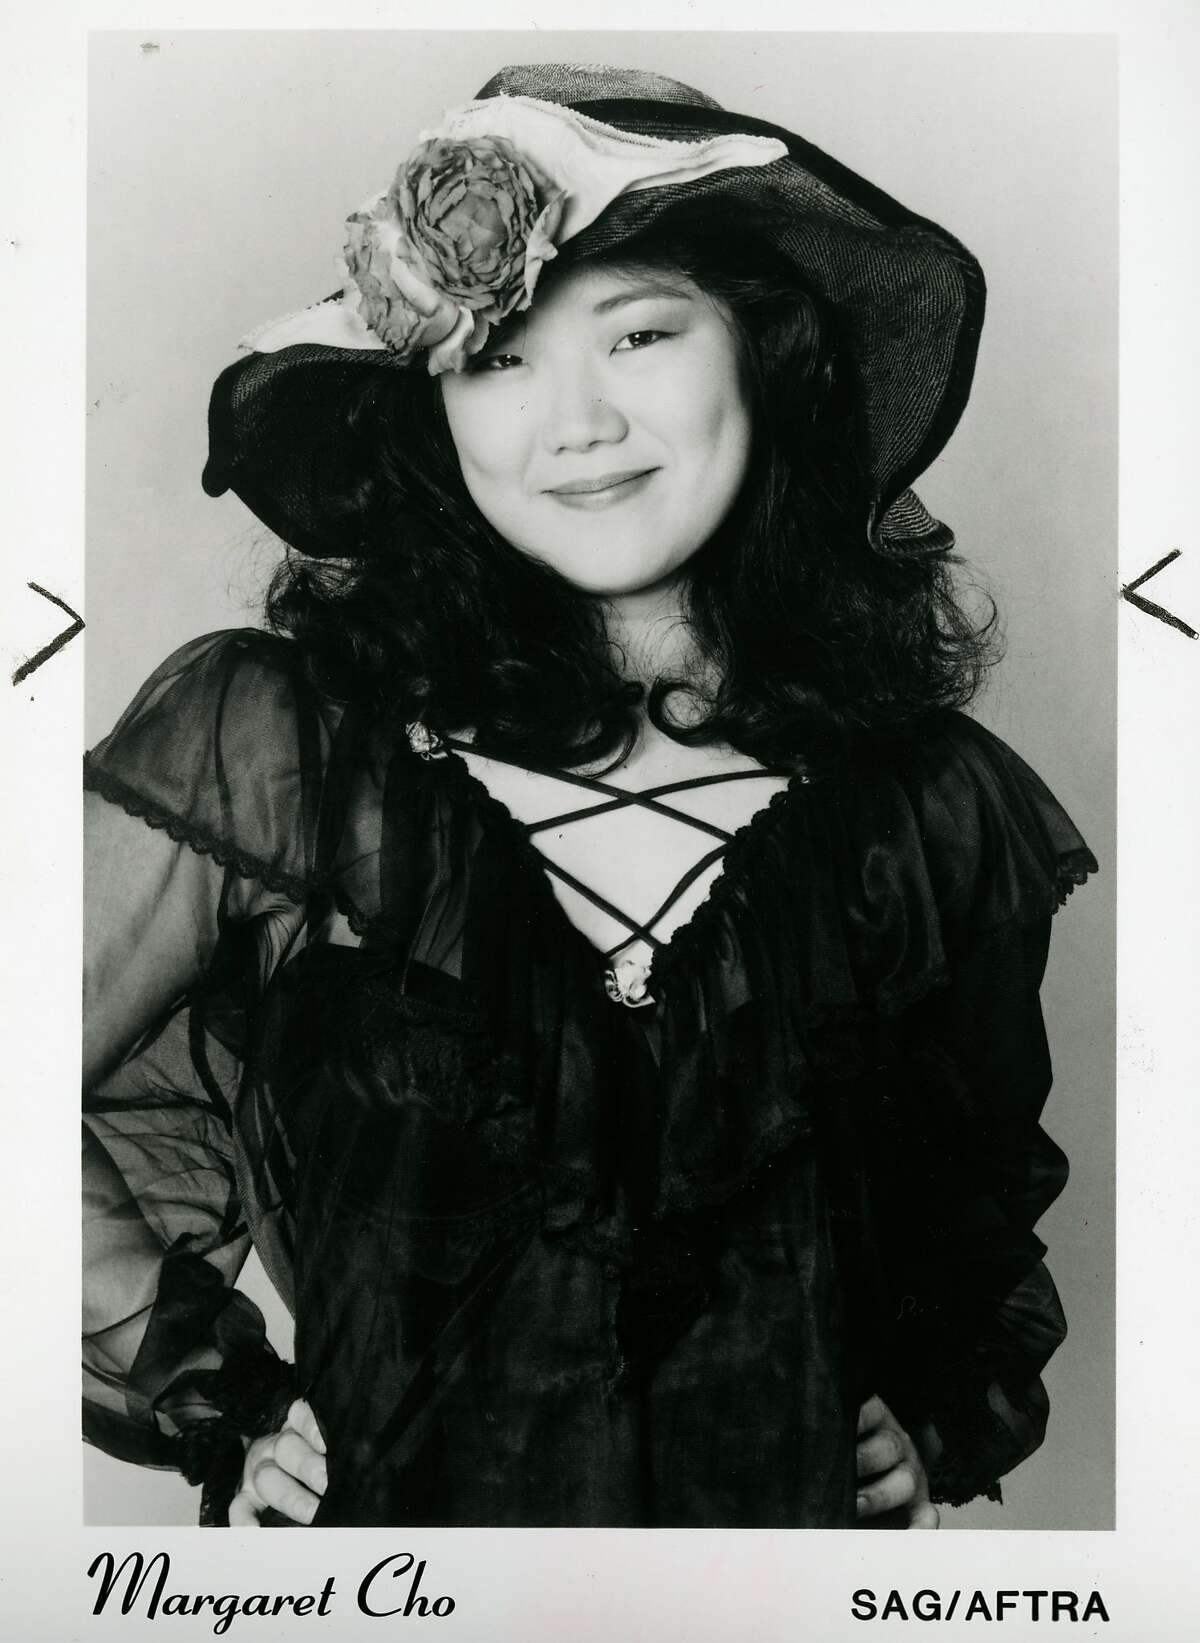 Margaret Cho during her says as a stand-up comic in San Francisco. July 6, 1993.